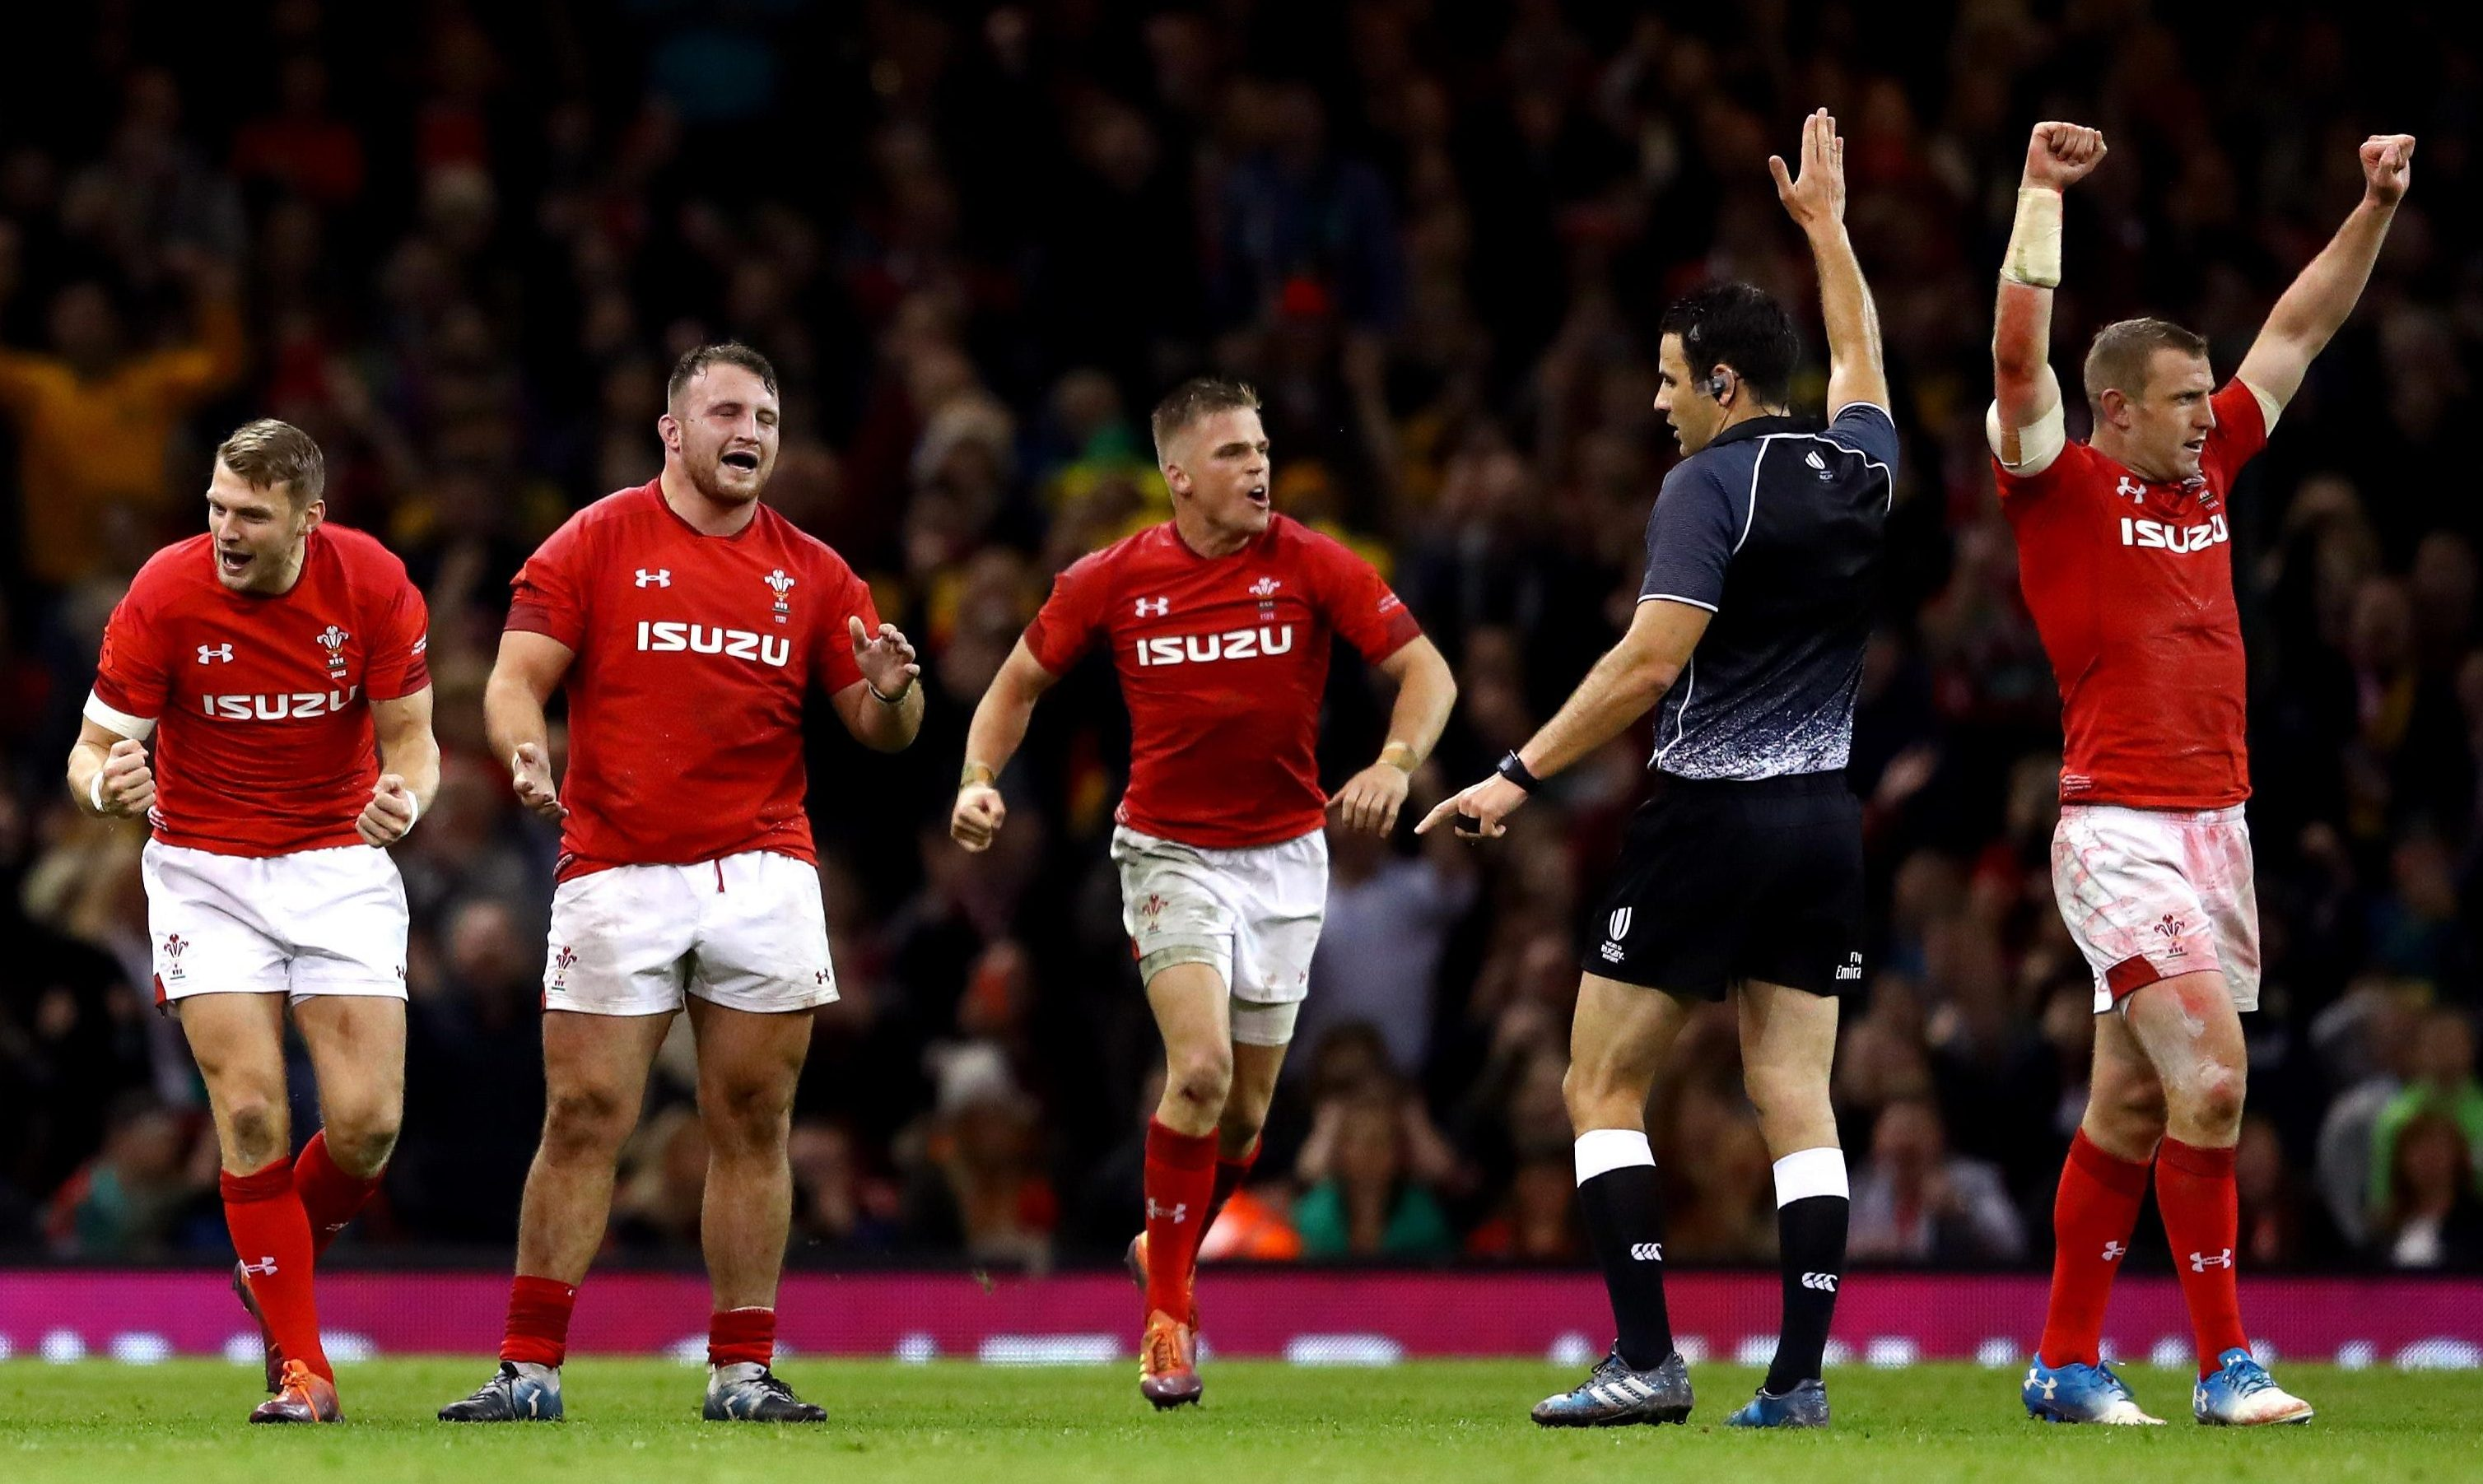 The referee signals the end of the game and Wales could start the party